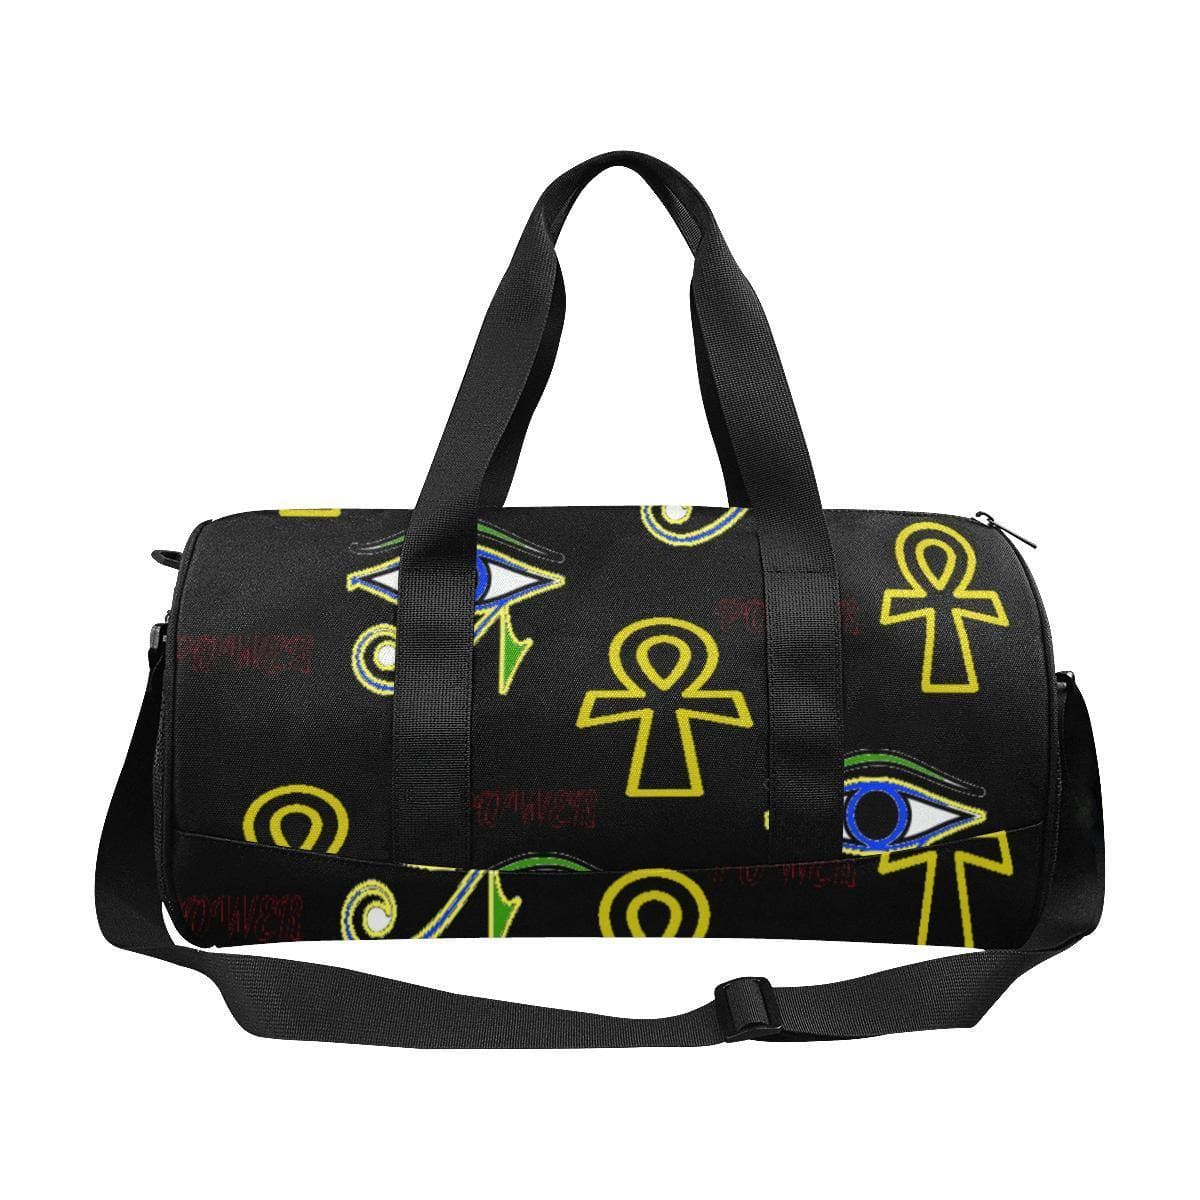 Power Clothing Travel Duffel Bag - Tie-Fly